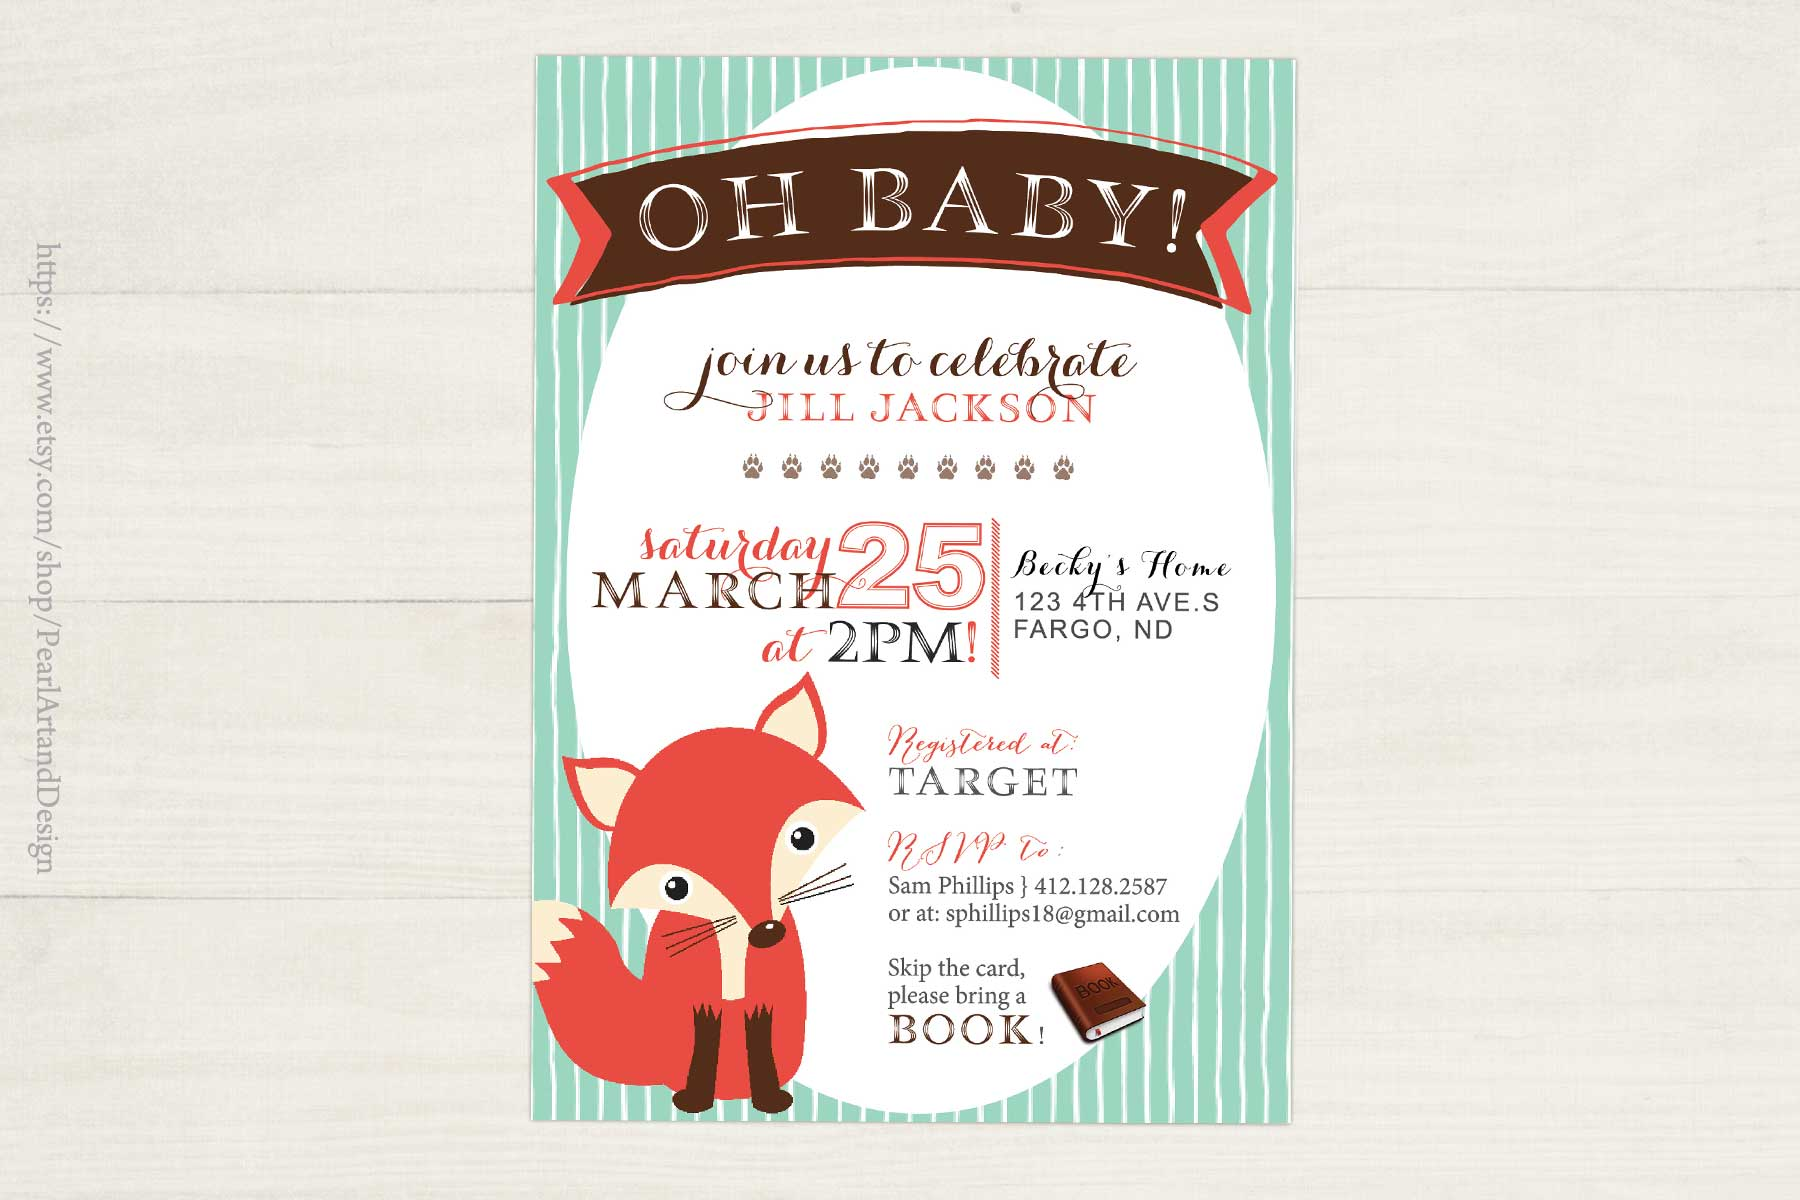 Fox_Baby_Shower2.jpg